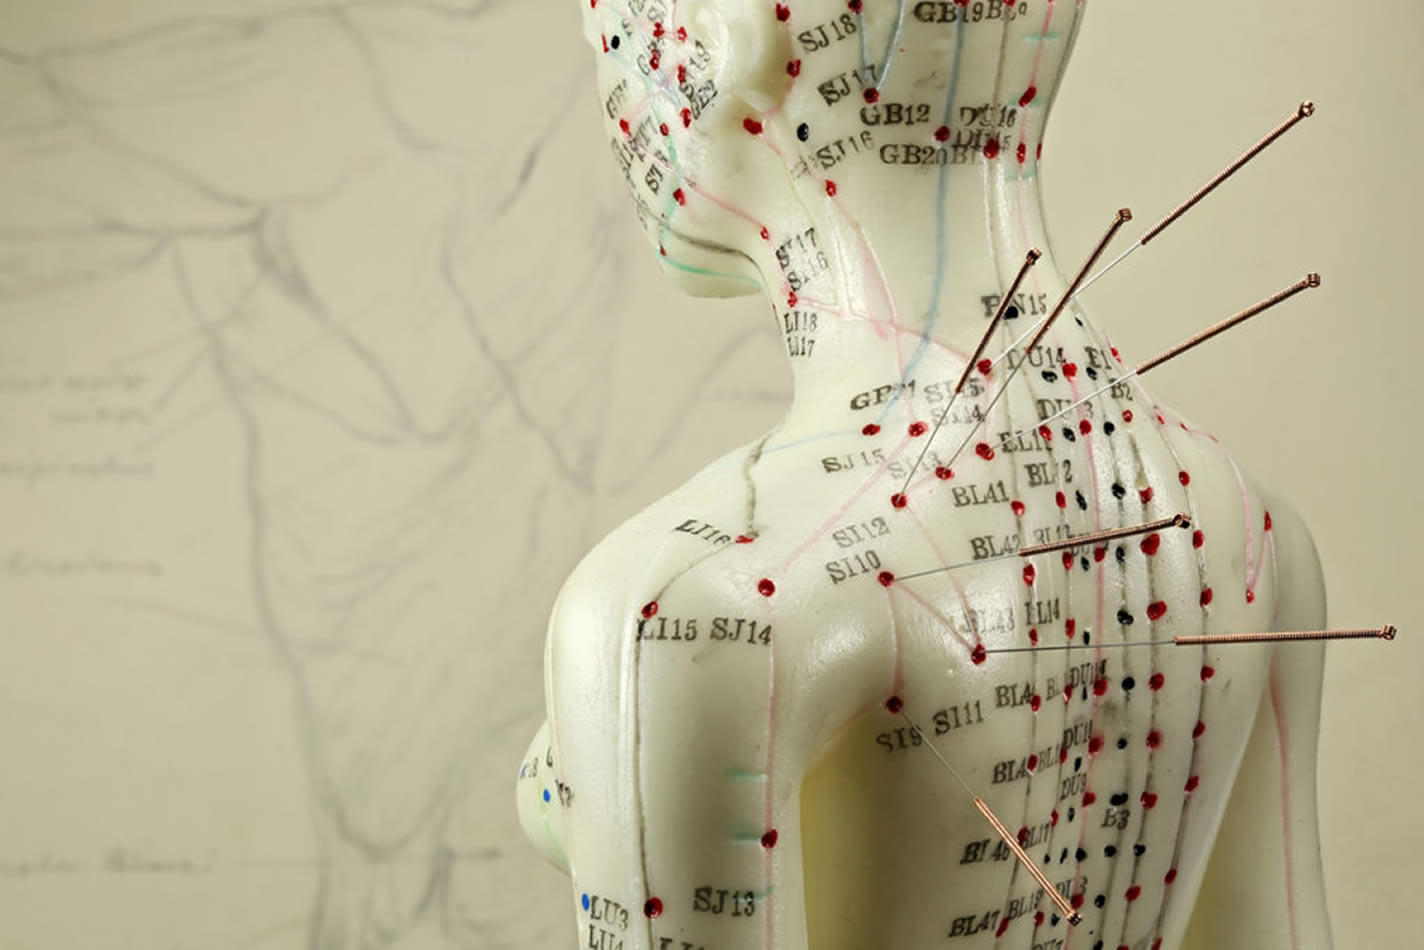 acupuncture-great-neck-ny-2-2